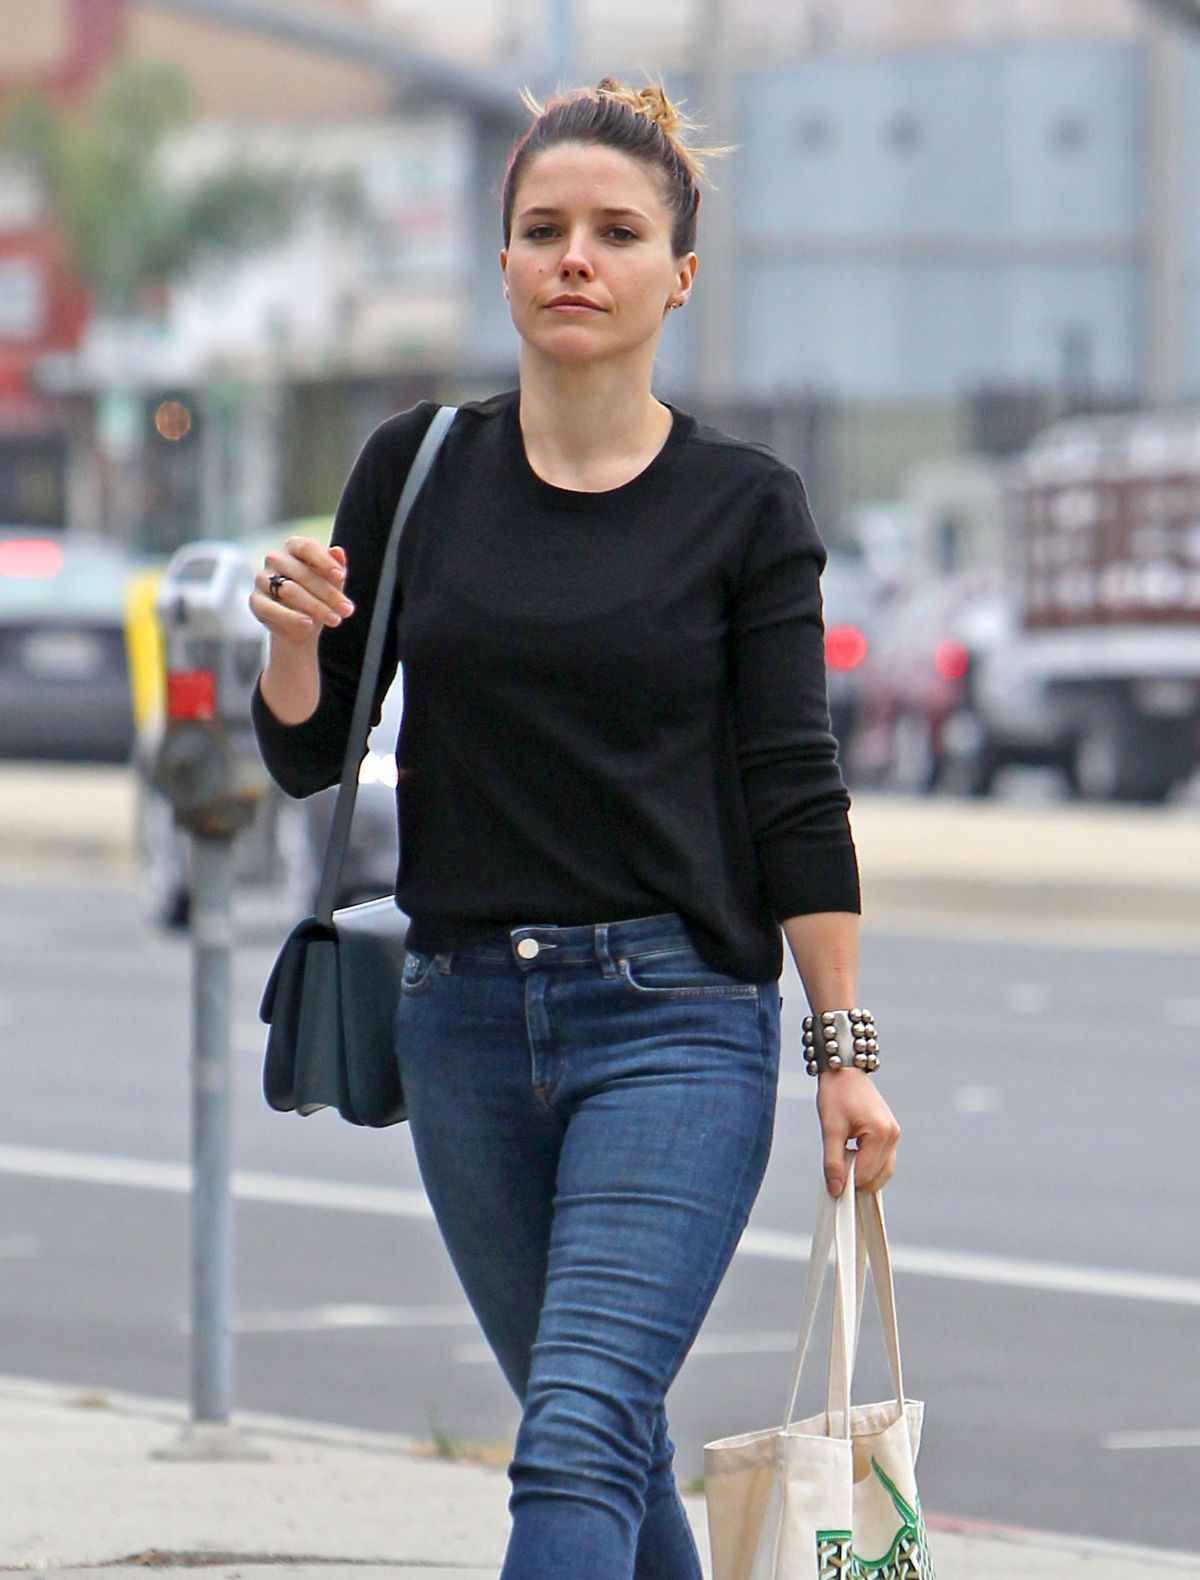 SOPHIA BUSH in Jeans Out and About in Venice 06/15/2015